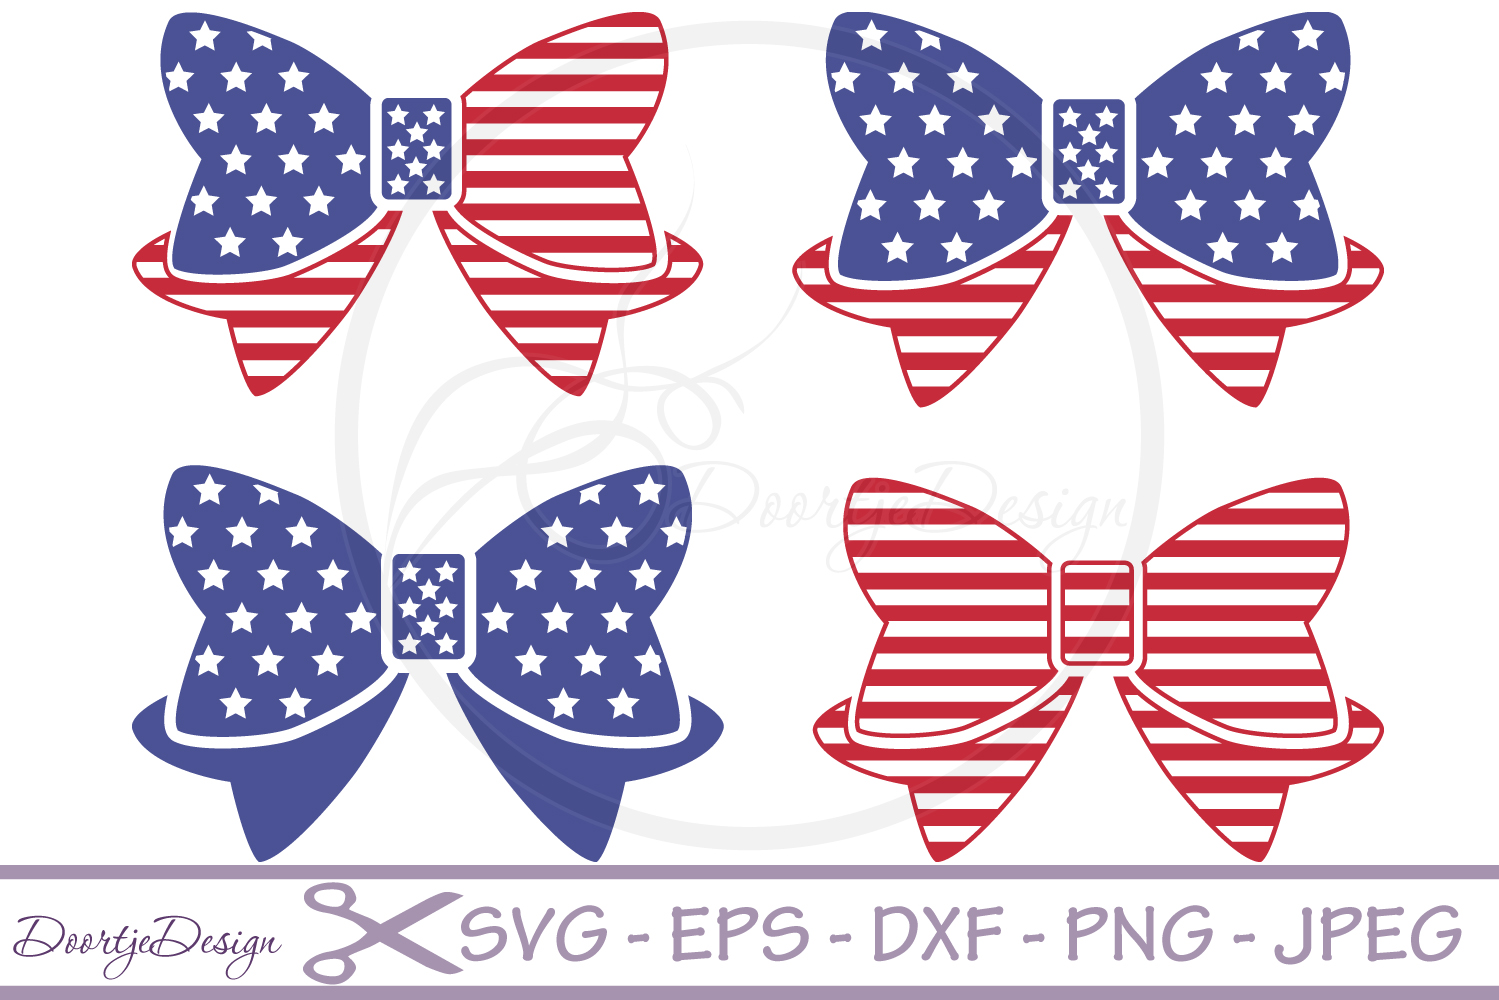 SVG 4th of July Bows 4 Cutting files example image 1